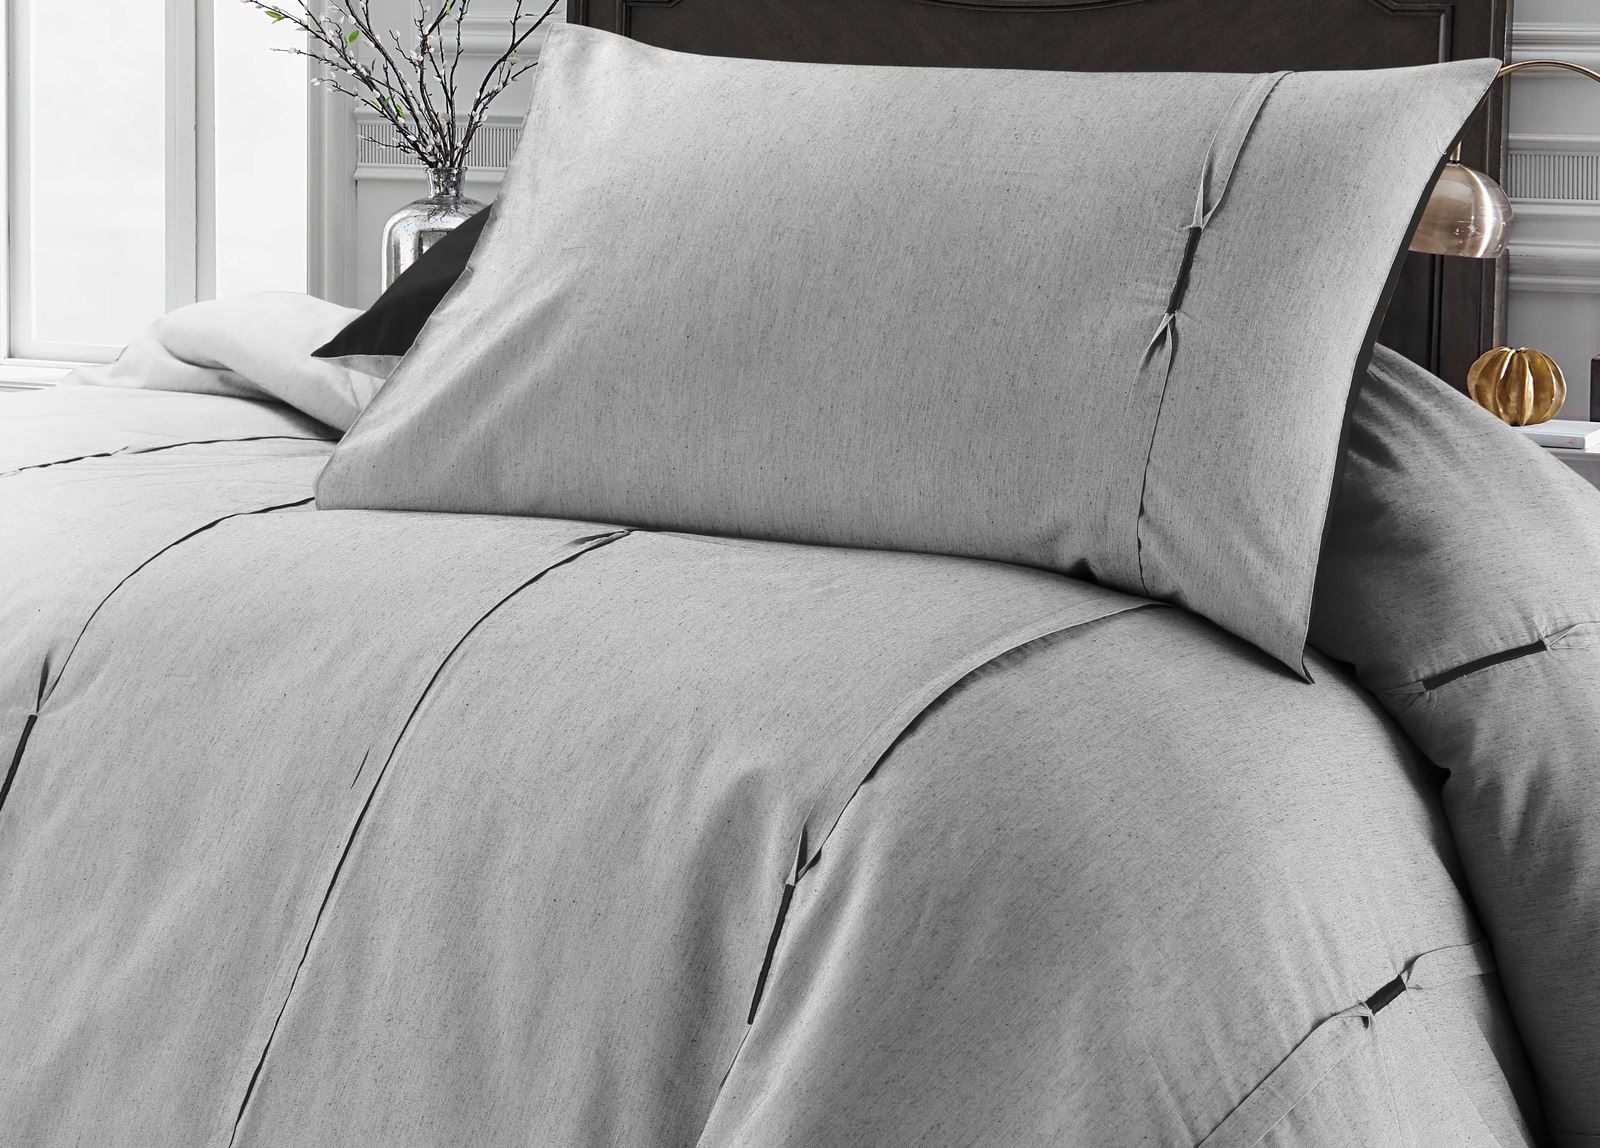 Luxury-Embellished-Duvet-Cover-Set-Single-Double-Super-King-Size-Bedding-Grey thumbnail 9